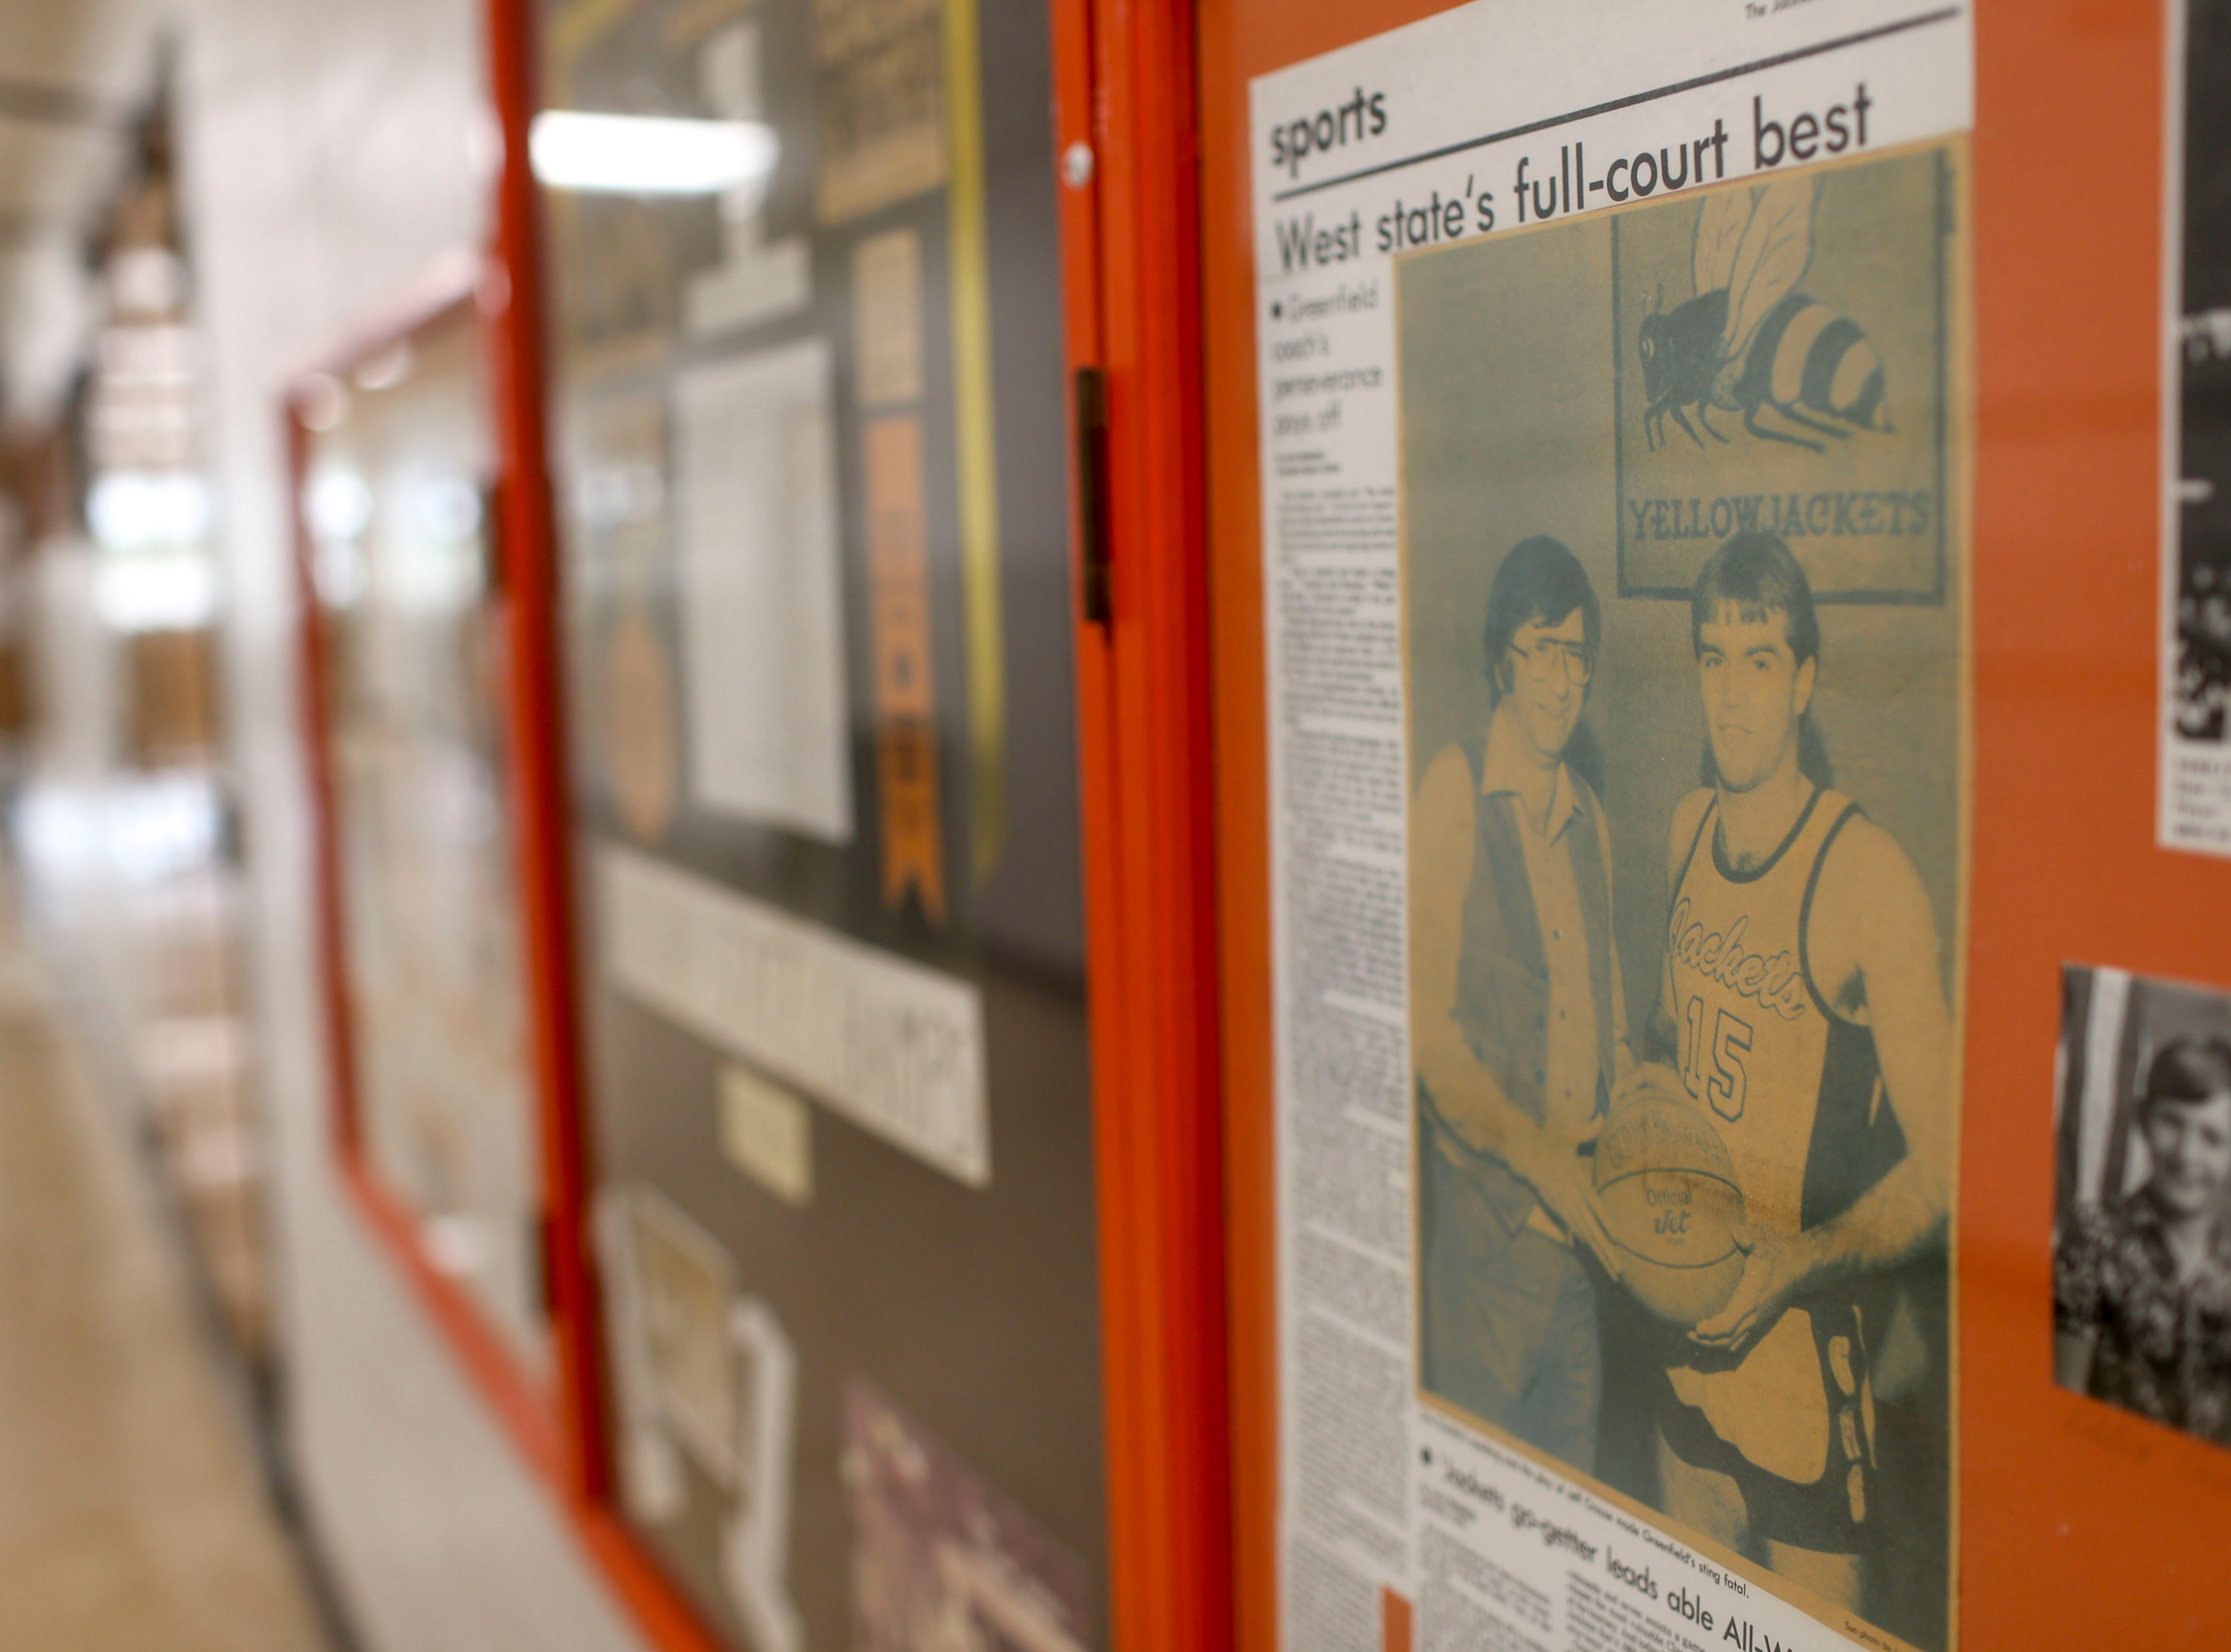 A framed news article and photo featuring the Crouse sibling's uncle Jeff Crouse, who played on a state championship team, can be seen hung on the wall at Greenfield School in Greenfield, Tenn., on Thursday, Jan. 24, 2019.